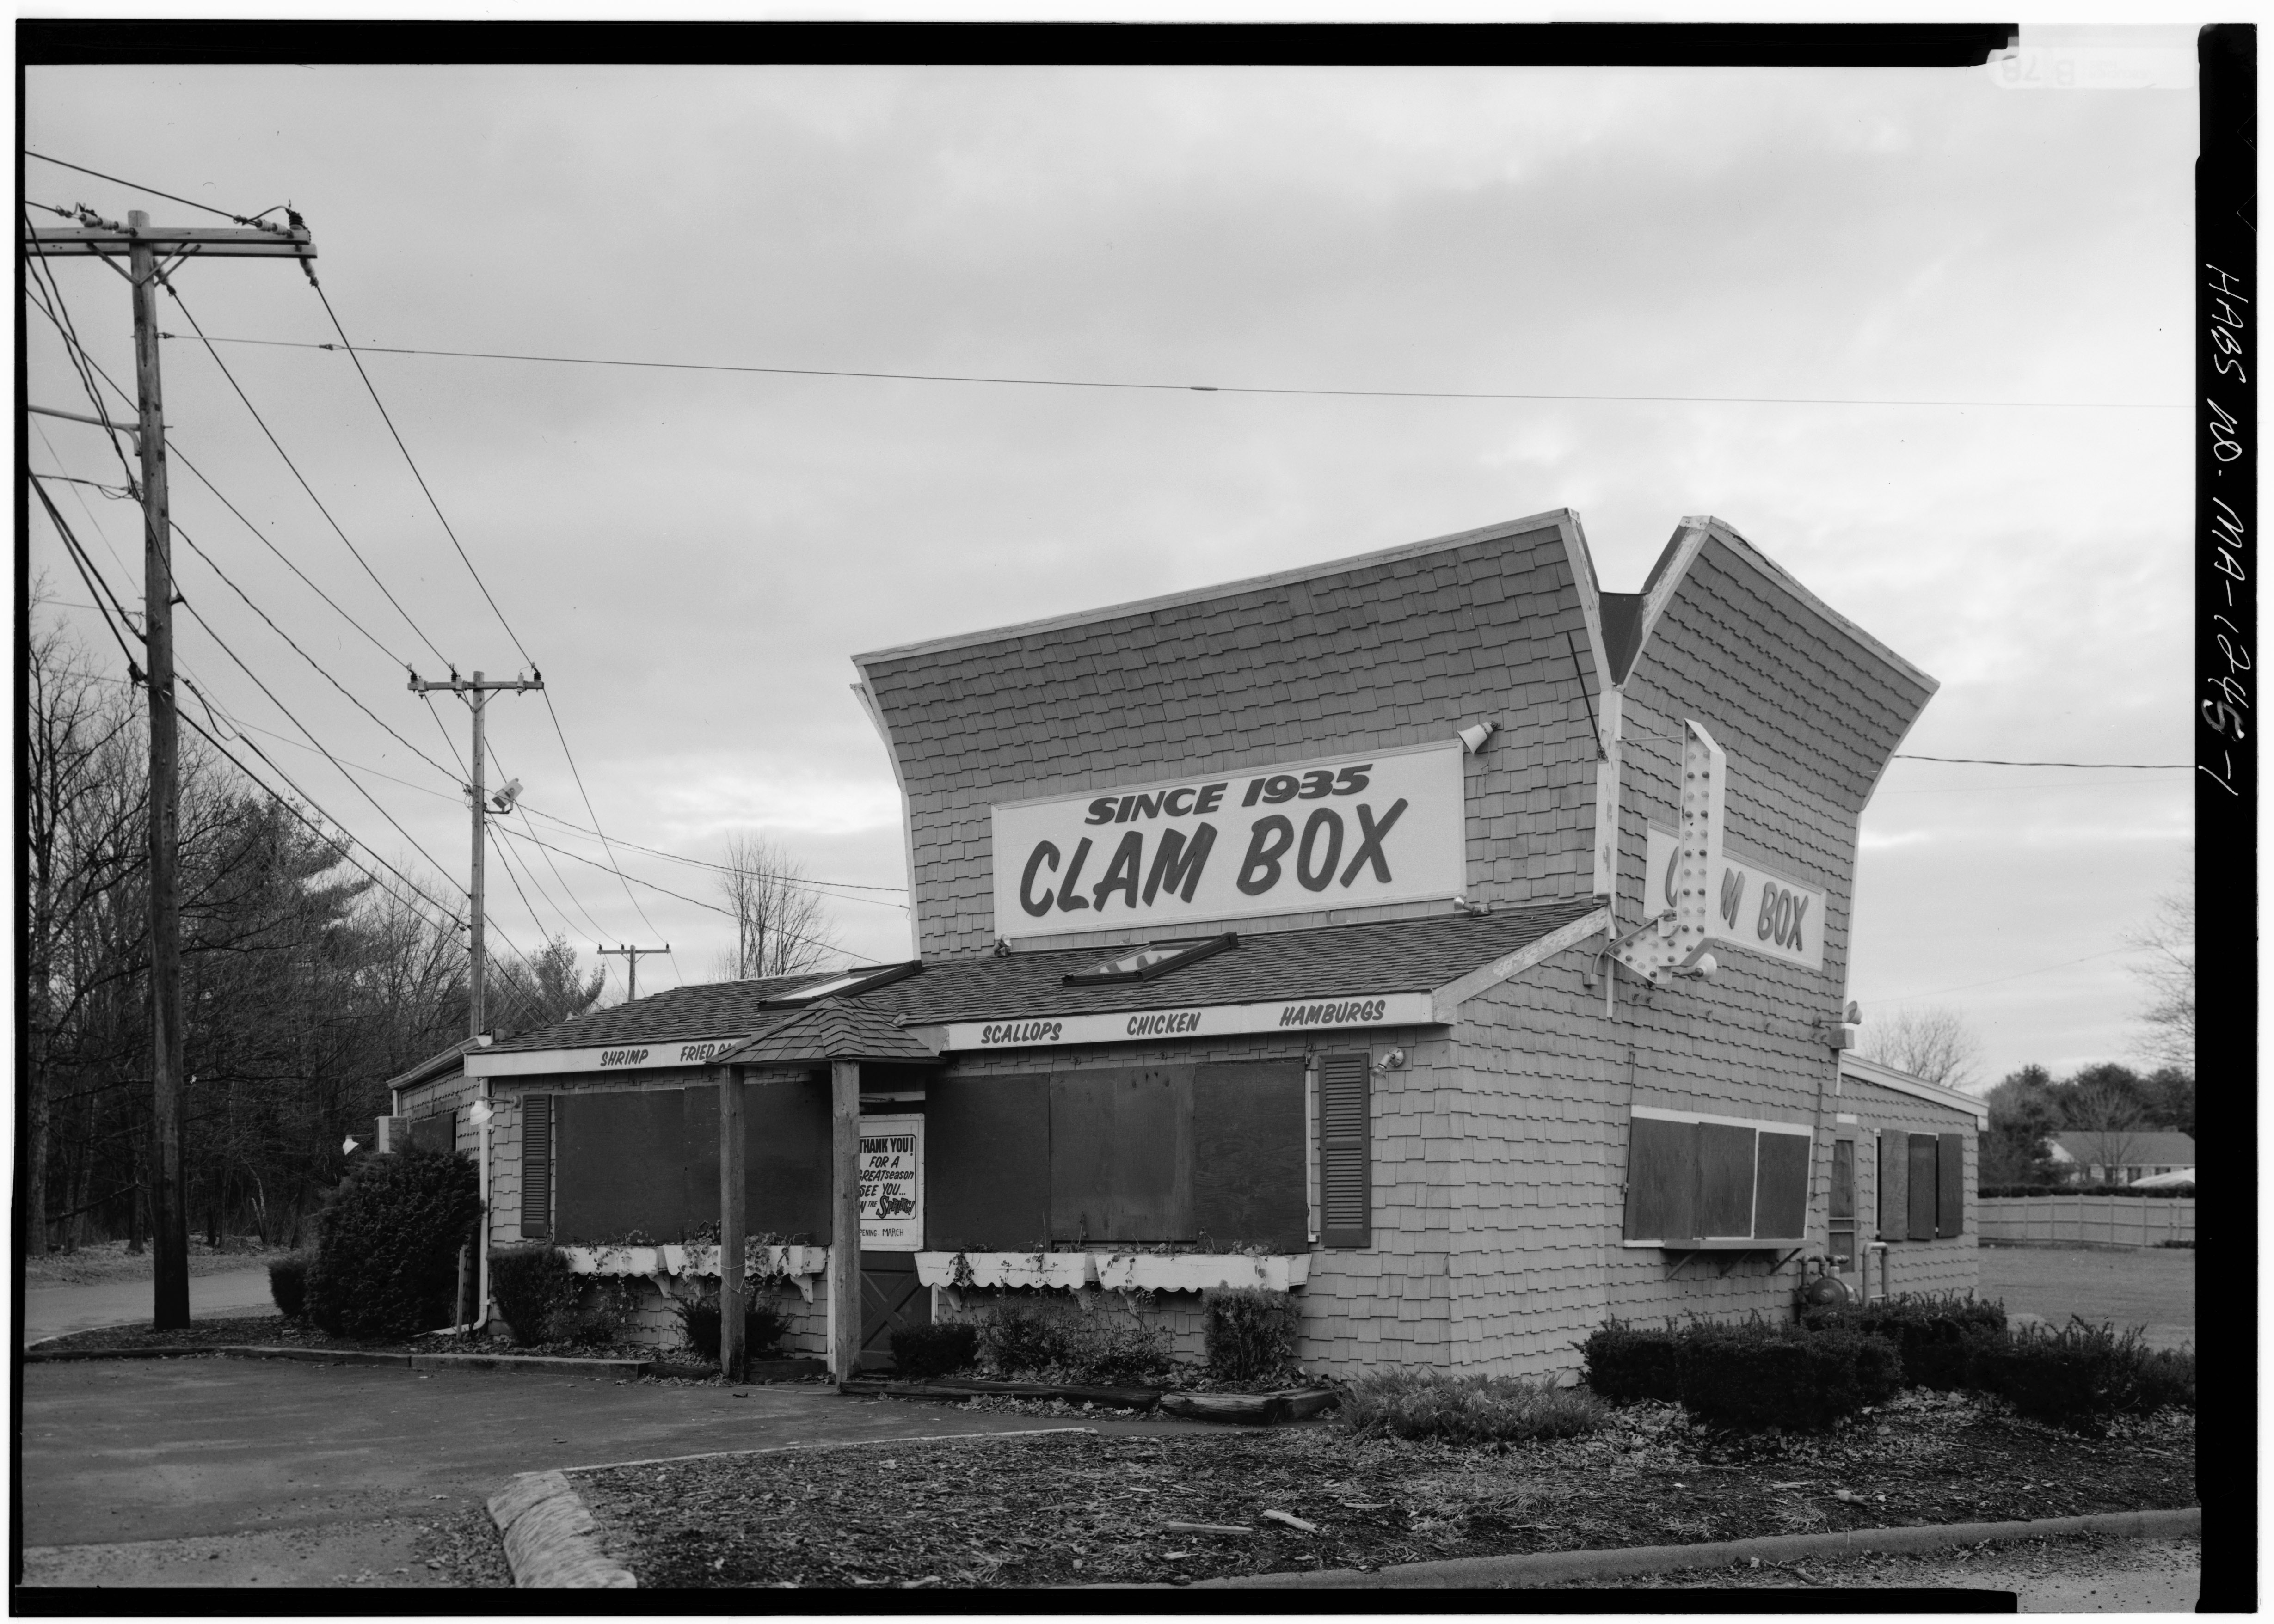 Ipswich Clam Box in 1945, from the Library of Congress site